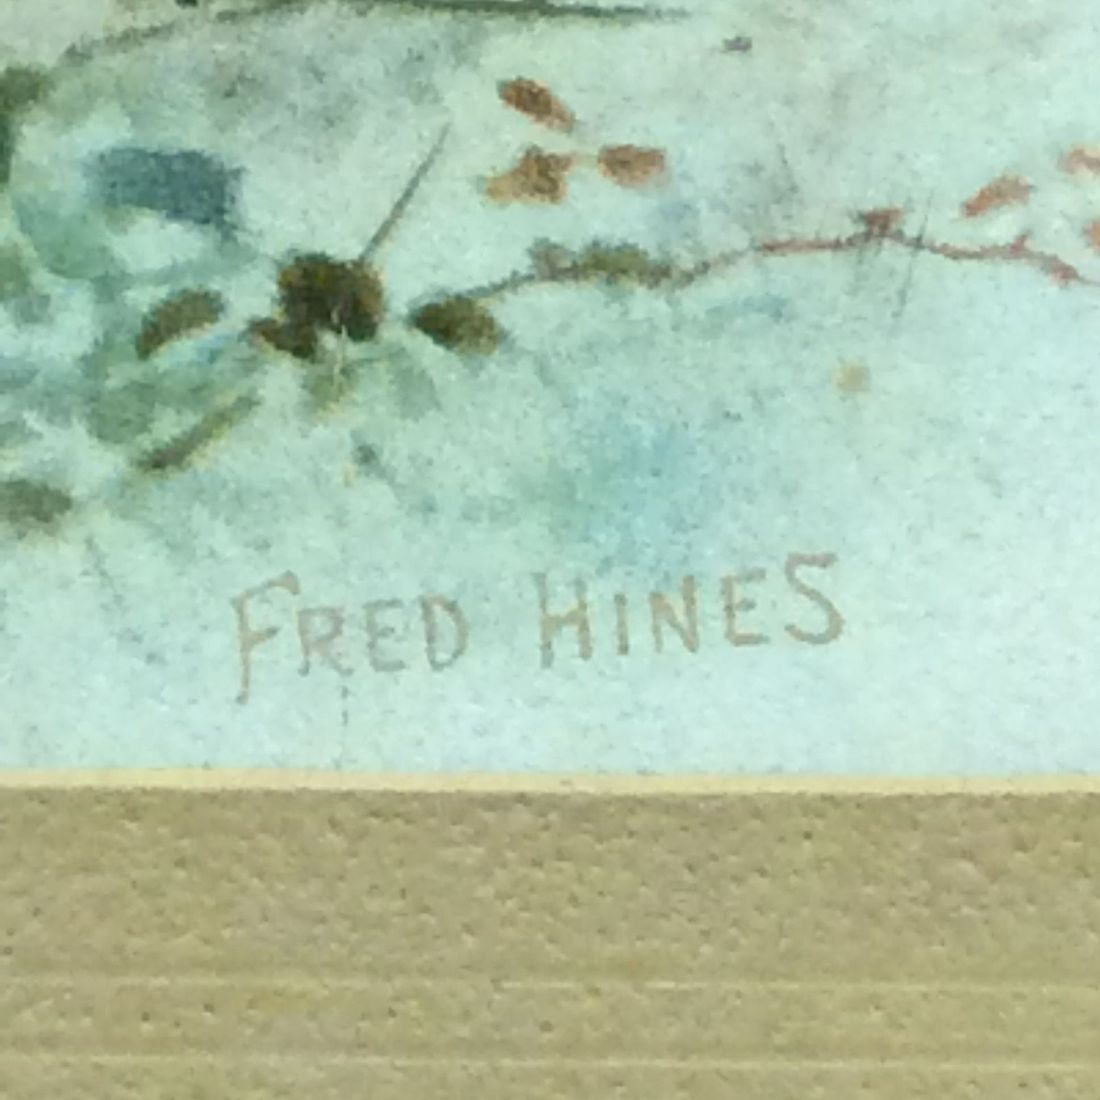 Frederick Hines Signature on Pastoral Scene Late 1800's Litho